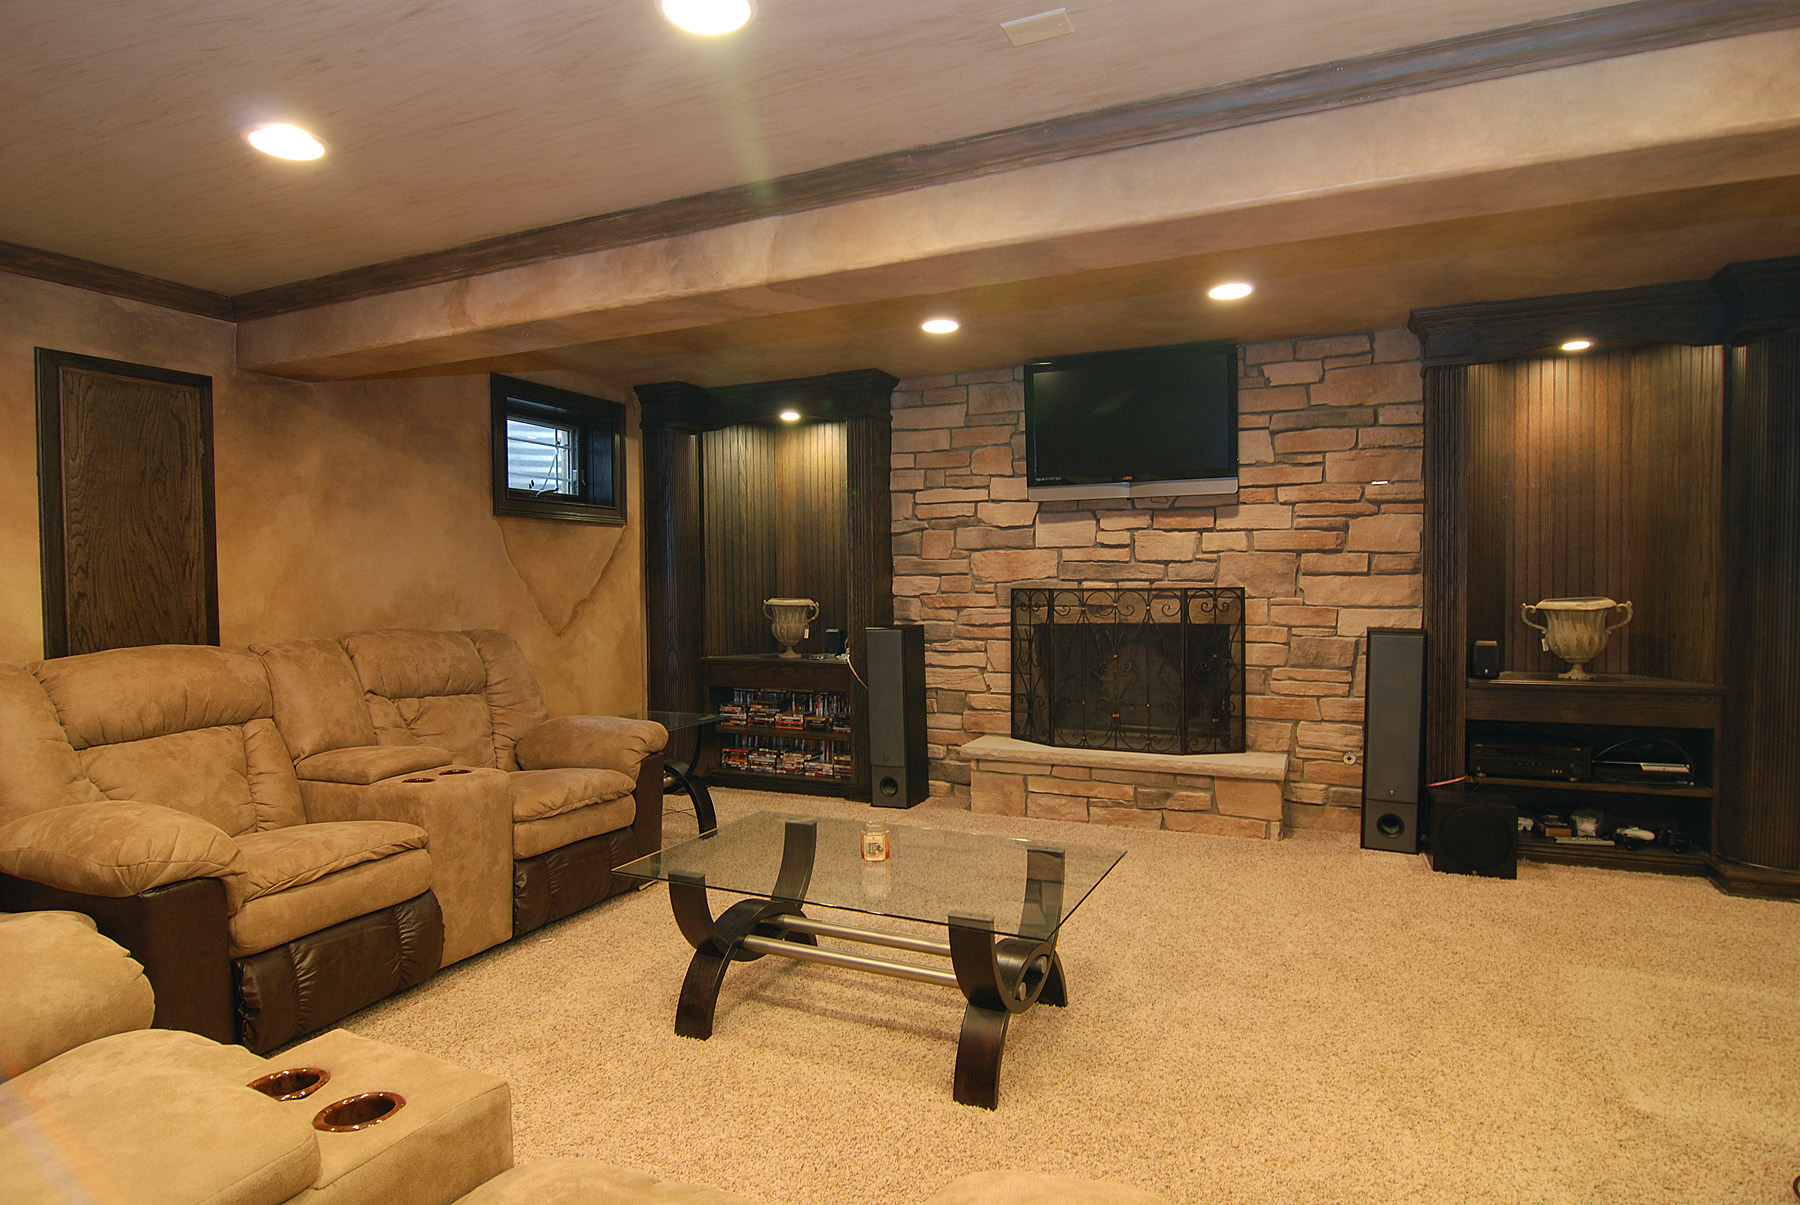 Chicago basement remodeling basement remodel chicago basement finishing homewerks - Finish my basement ideas ...